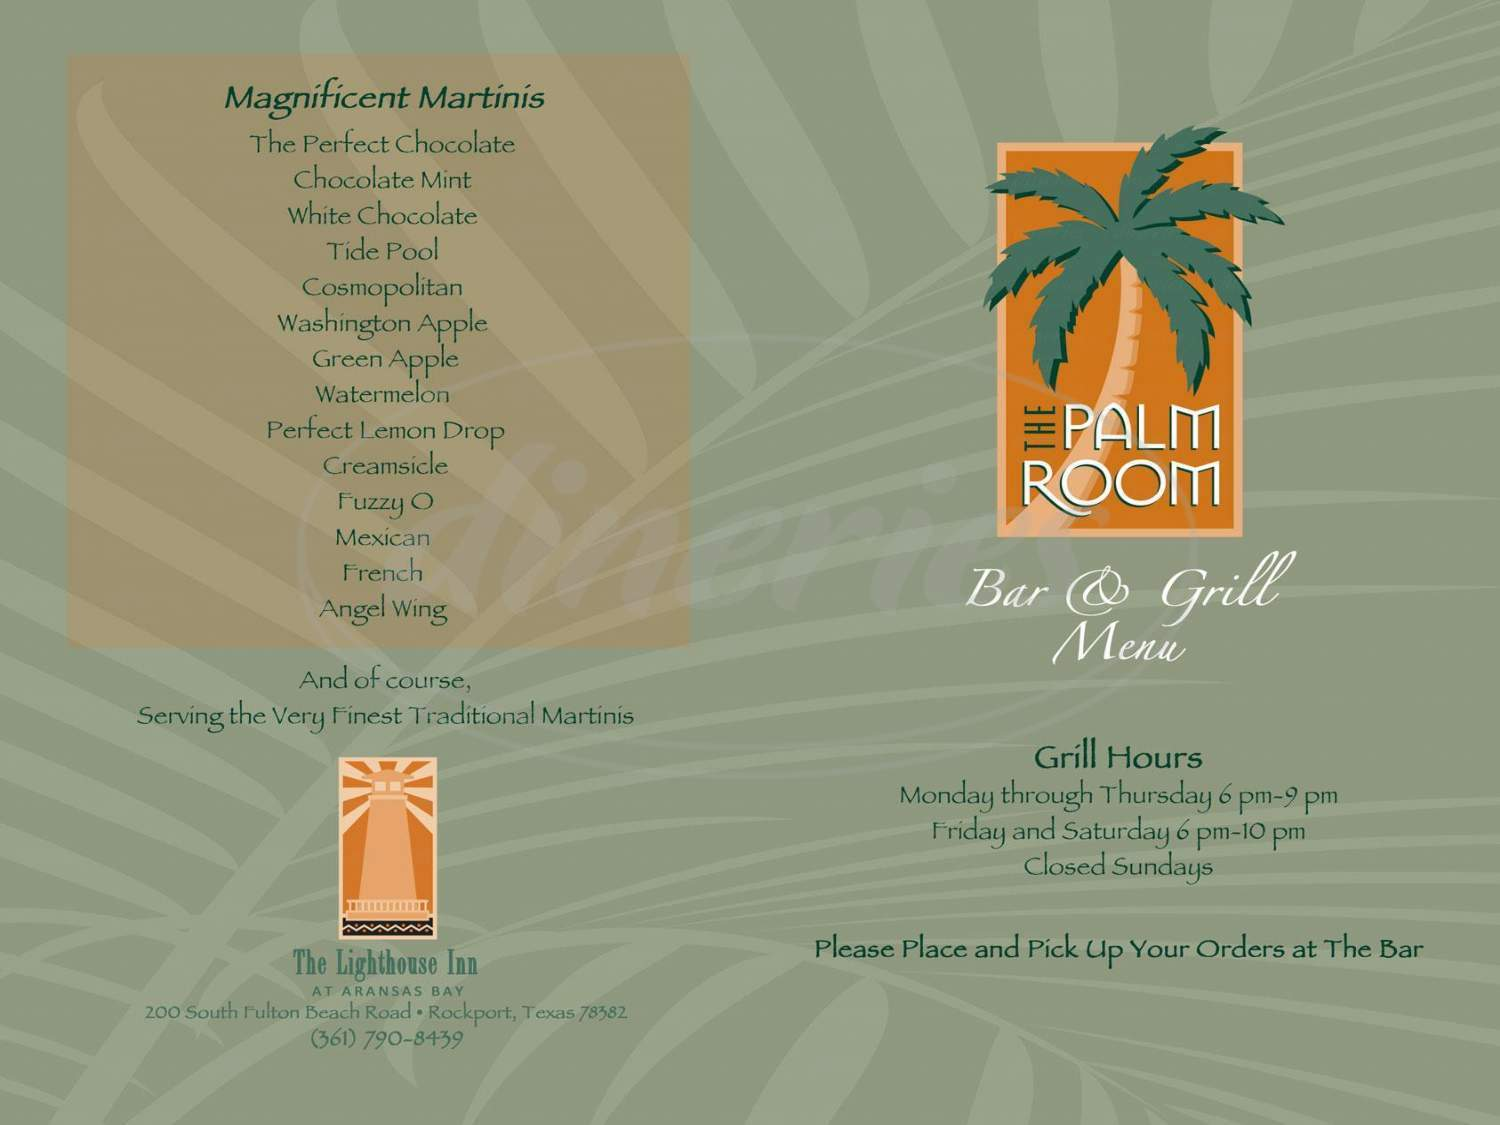 menu for The Palm Room